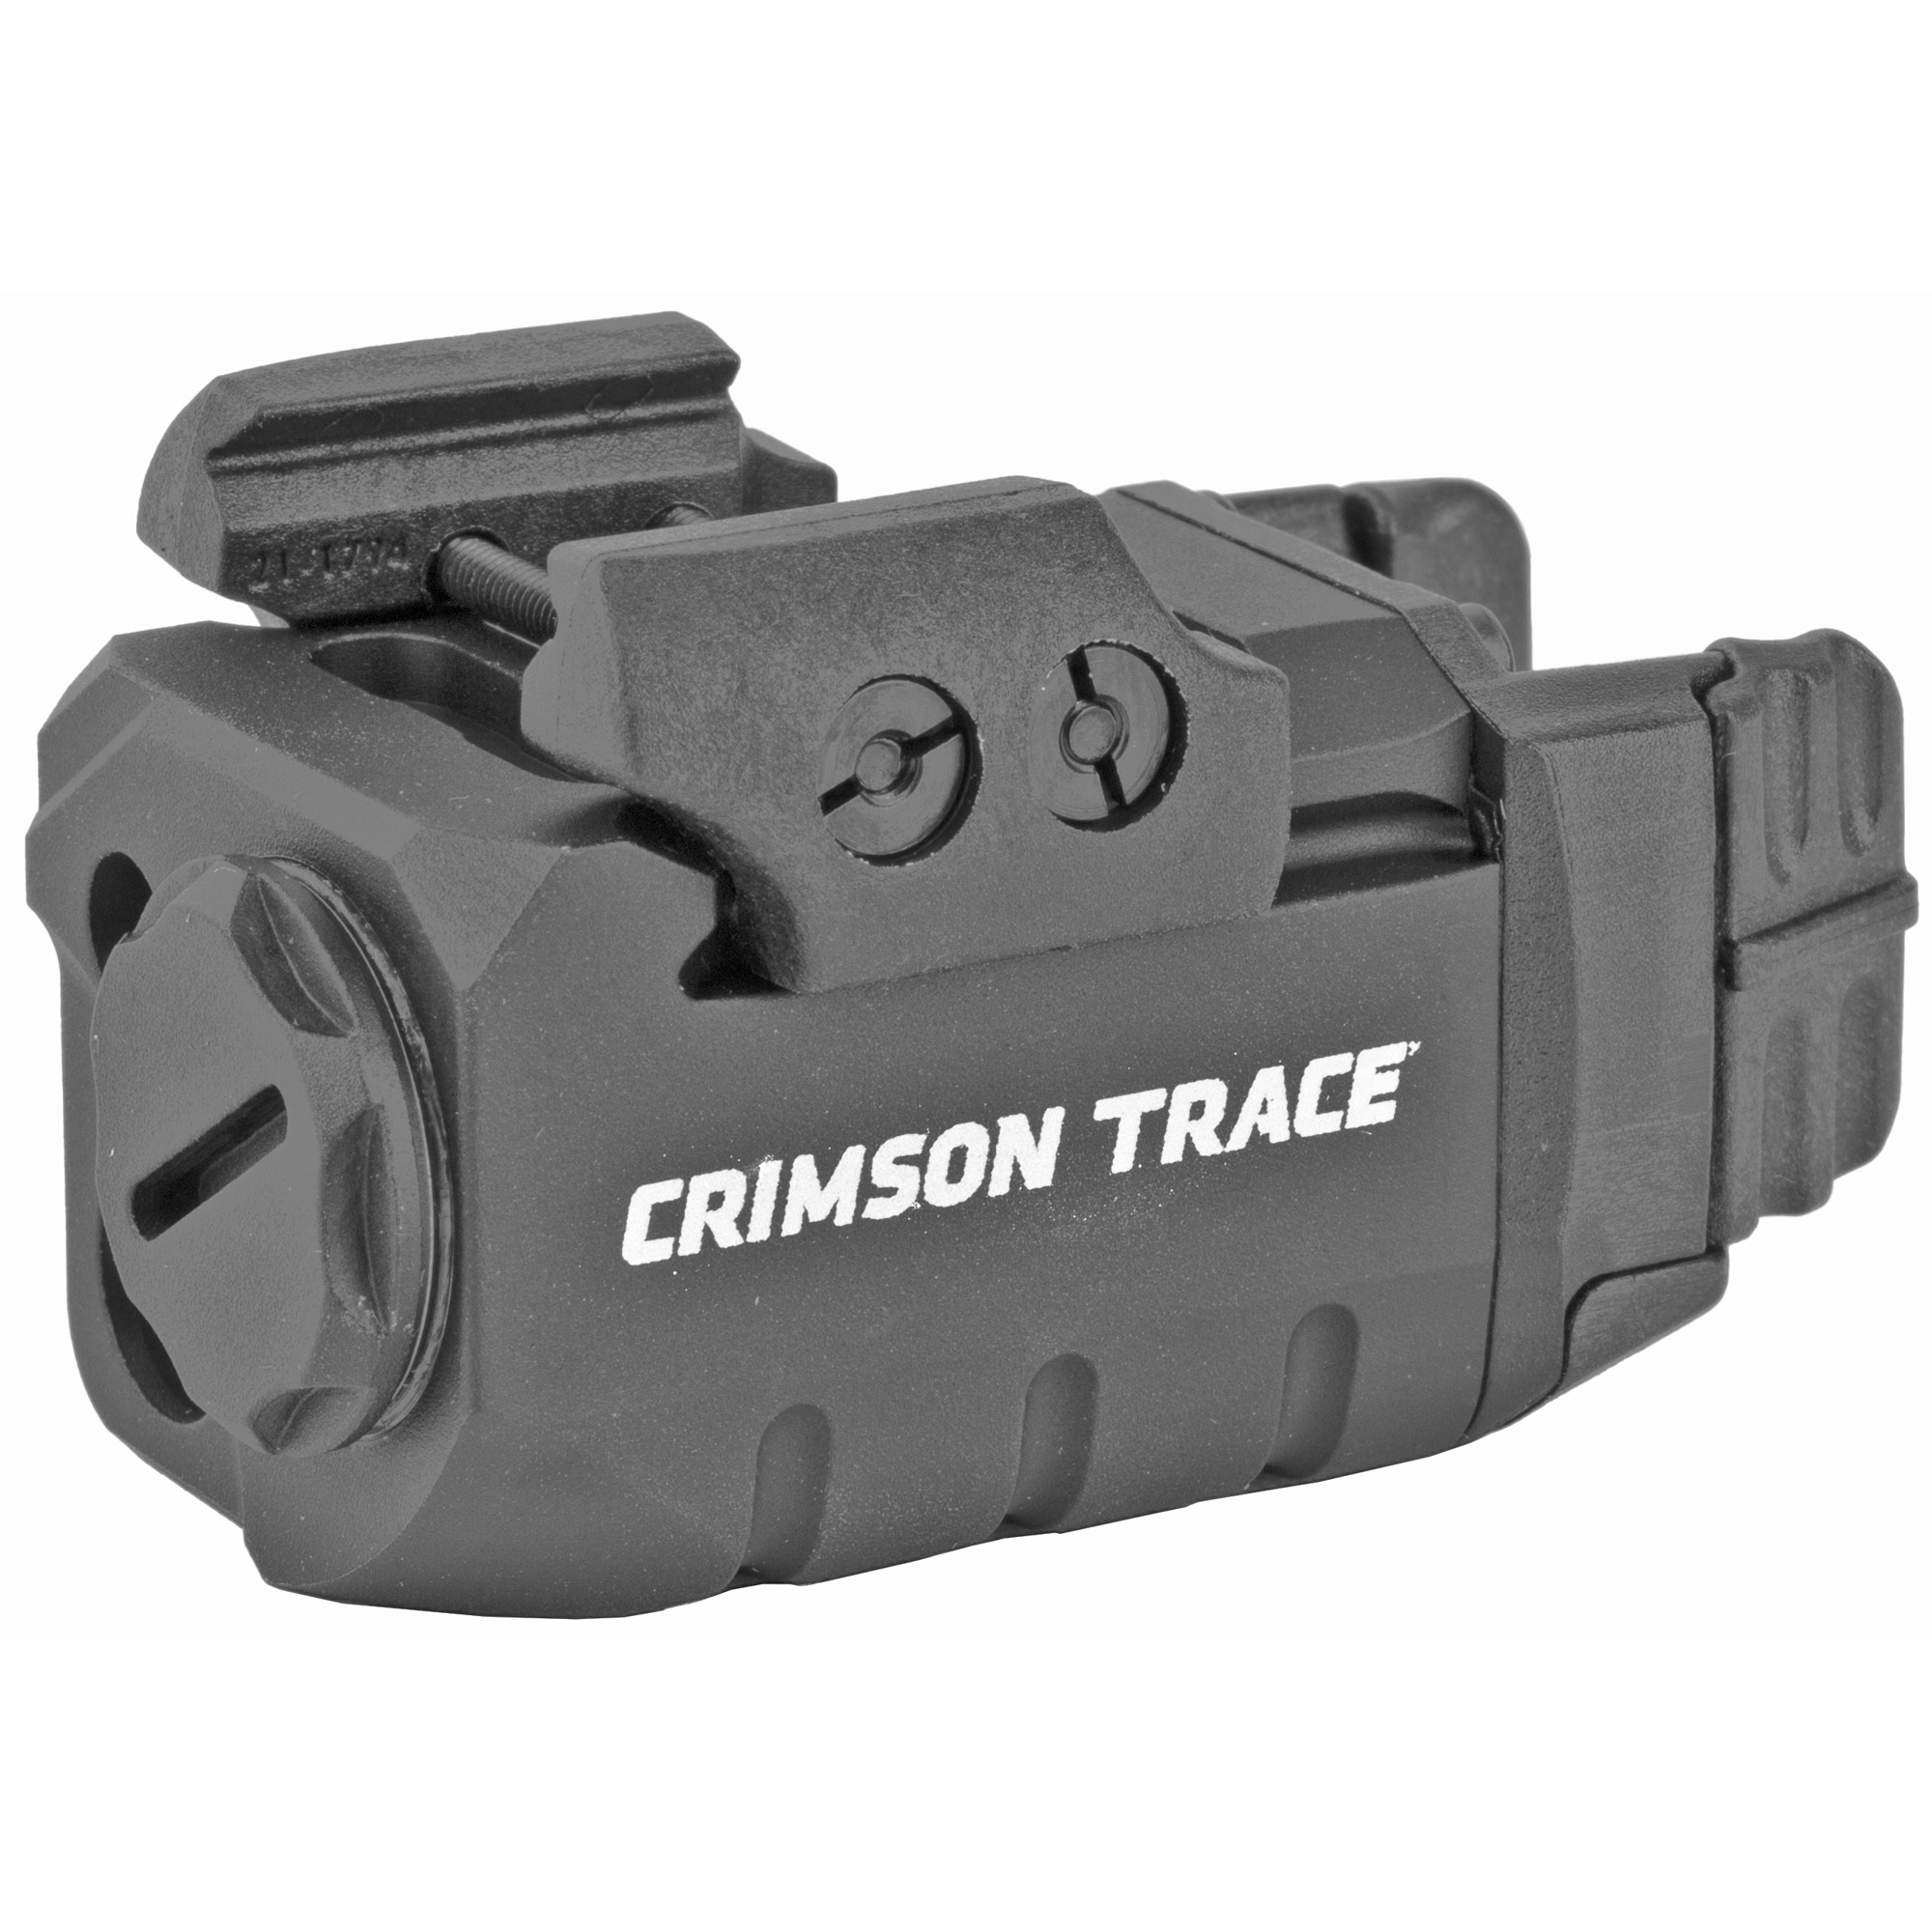 """The Rail Master Pro(TM) Universal Green Laser Sight & Tactical Light combines two tactical tools in a single compact unit. The versatile unit is designed to fit most modern pistols"""" rifles and shotguns with an M1913 Picatinny or Weaver-style accessory rail. A powerful green laser anchors the unit and provides up to 1 hour of continuous use on a single CR2 Lithium battery. The Rail Master Pro also includes a powerful 100 Lumen white light for target identification. The unit features four operational modes including: Laser/Light Constant On"""" Laser Constant On"""" Light Constant On"""" and Laser w/Light Dazzler. Activation is instant"""" with Tap On"""" Tap Off controls and a programmed Auto Shut Off at five minutes to conserve battery life."""